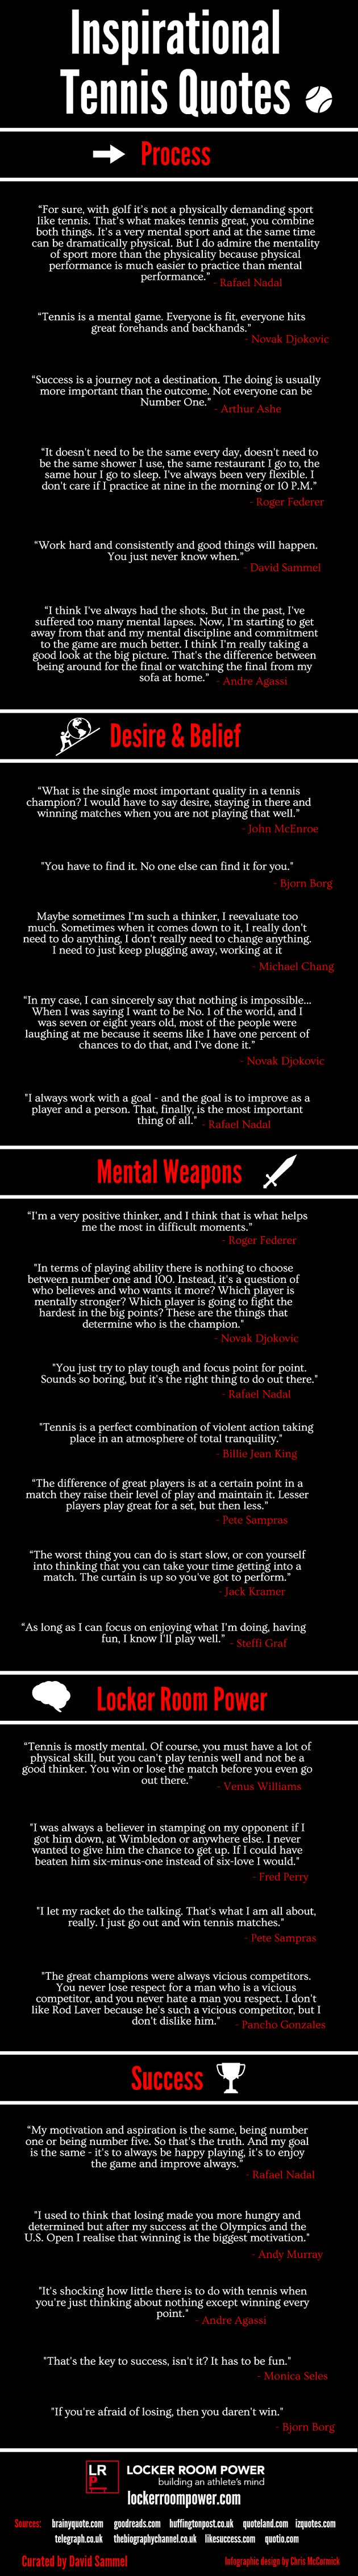 Inspirational Tennis Quotes infographic.